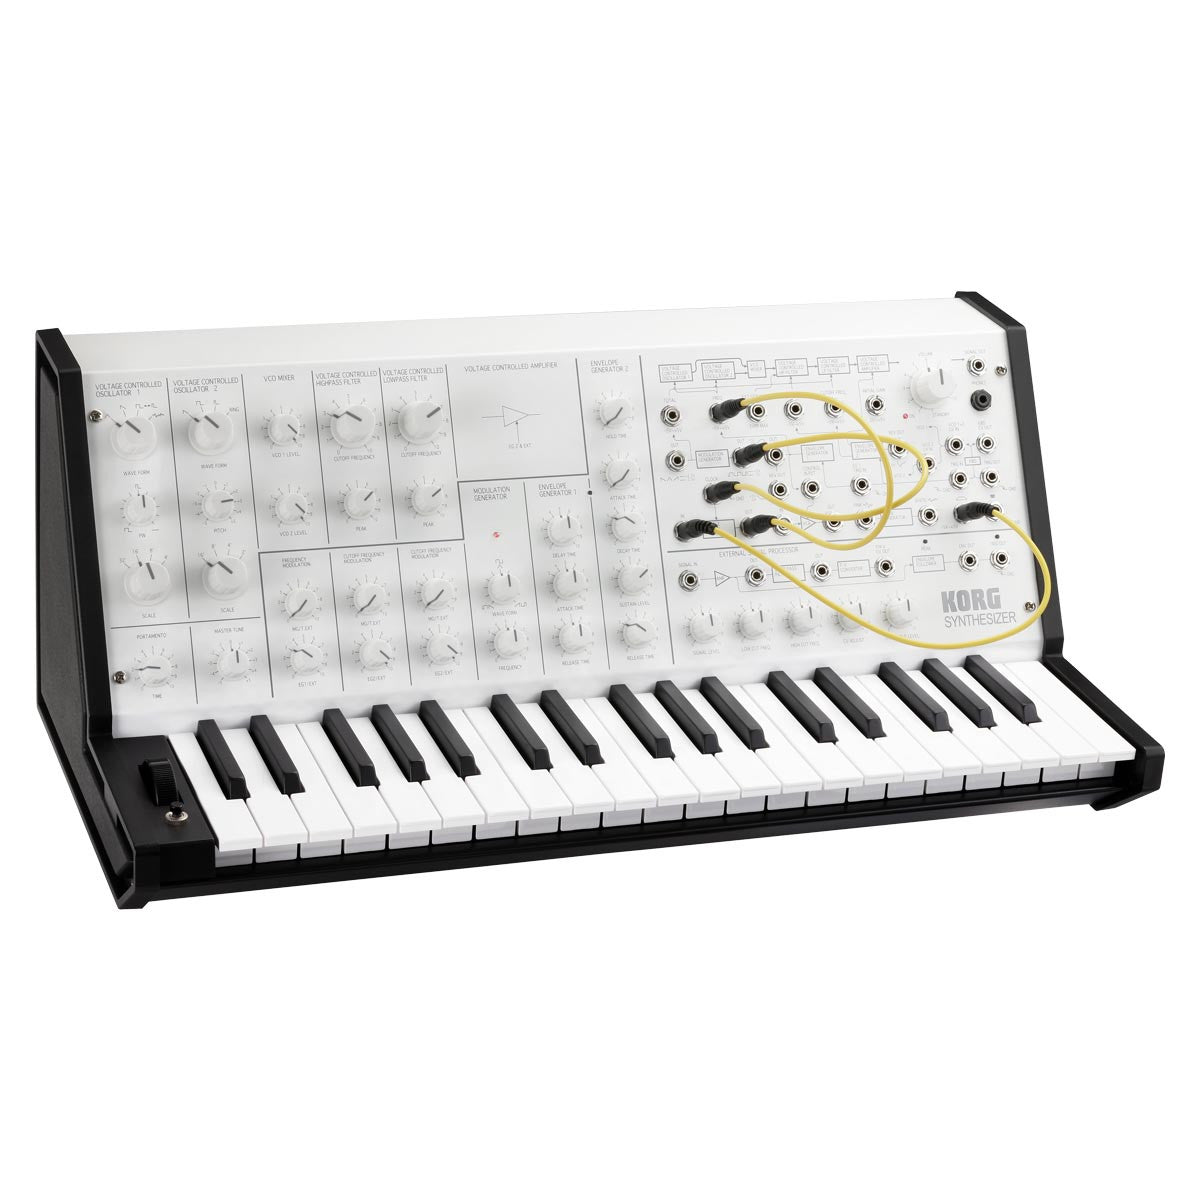 Korg MS-20 Mini Analog Monophonic Synth - Limited White